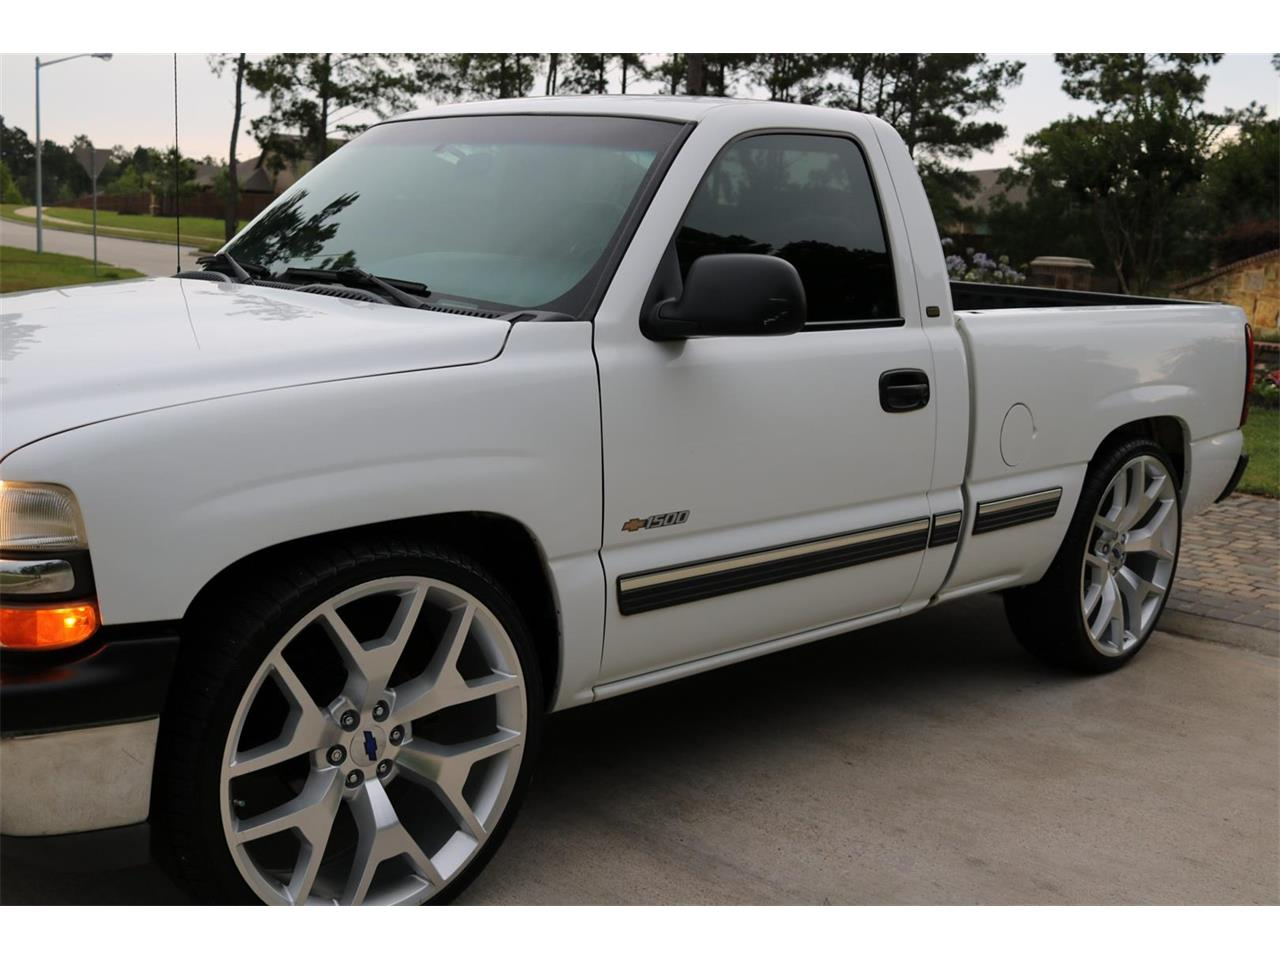 Large Picture of 2000 Chevrolet Silverado - $9,900.00 Offered by Texas Trucks and Classics - PS94